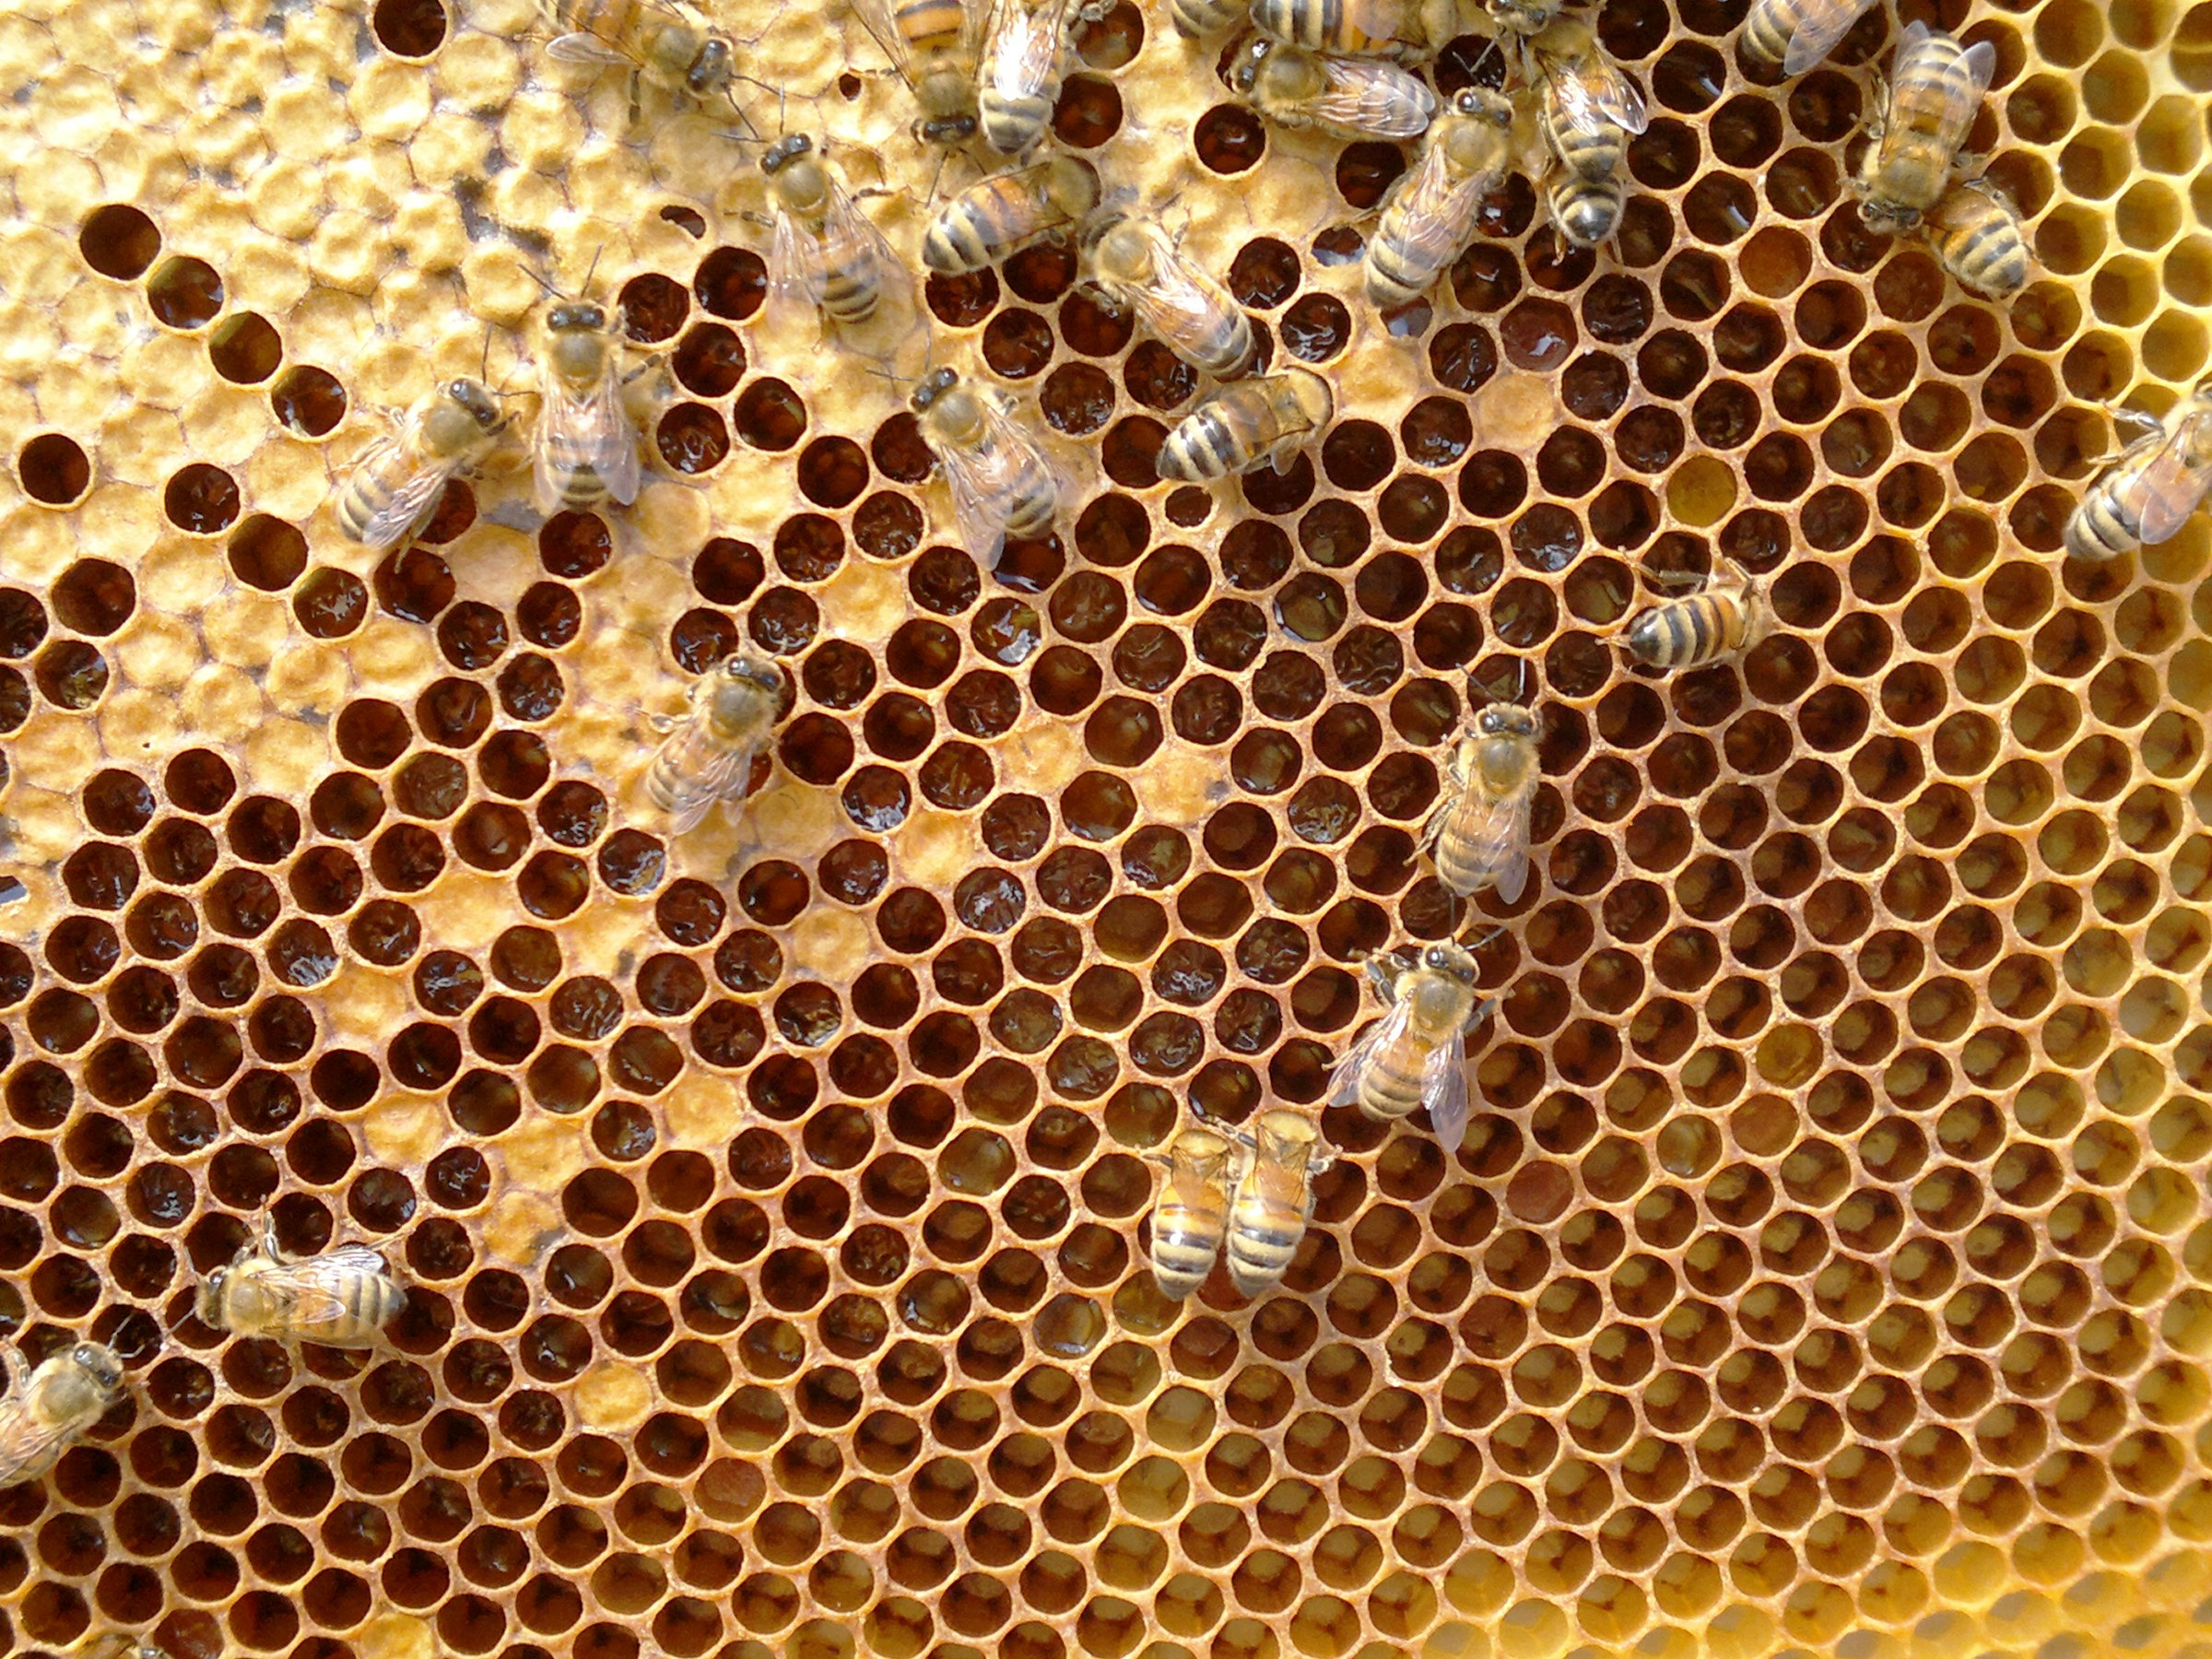 The free space being quickly filled with new honey